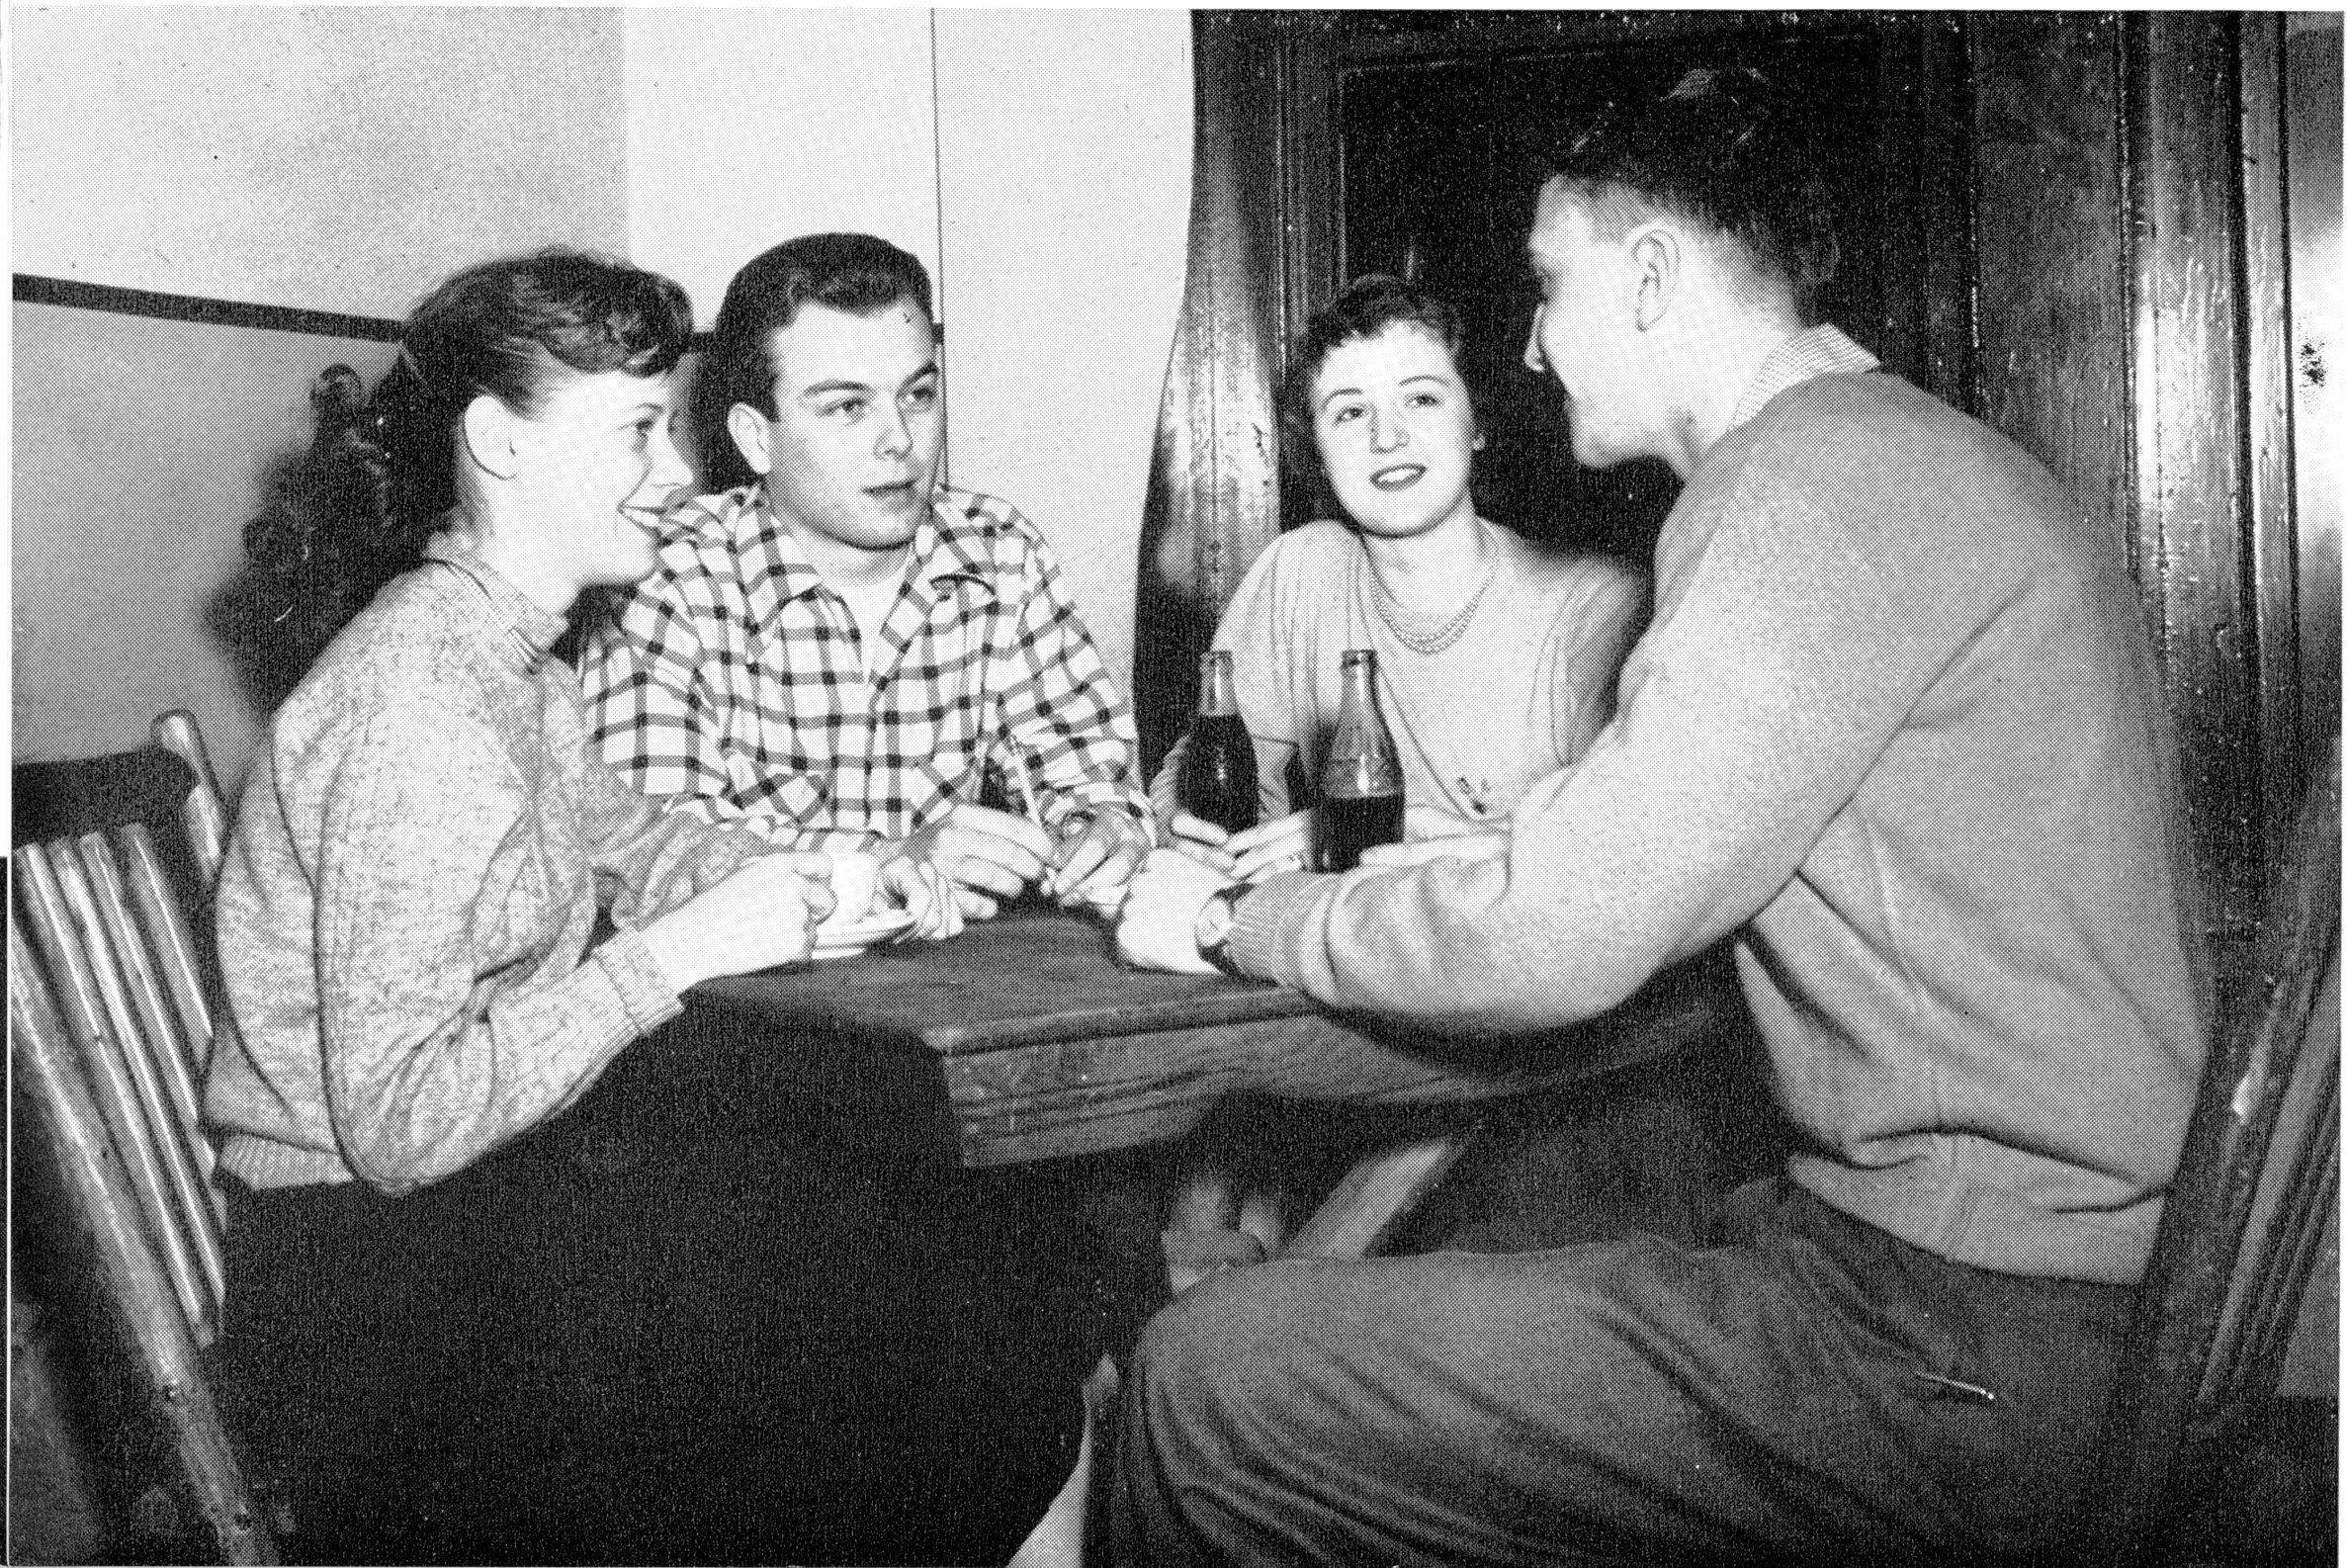 Group of Boys and Girls Sitting at Table with Coke Bottles